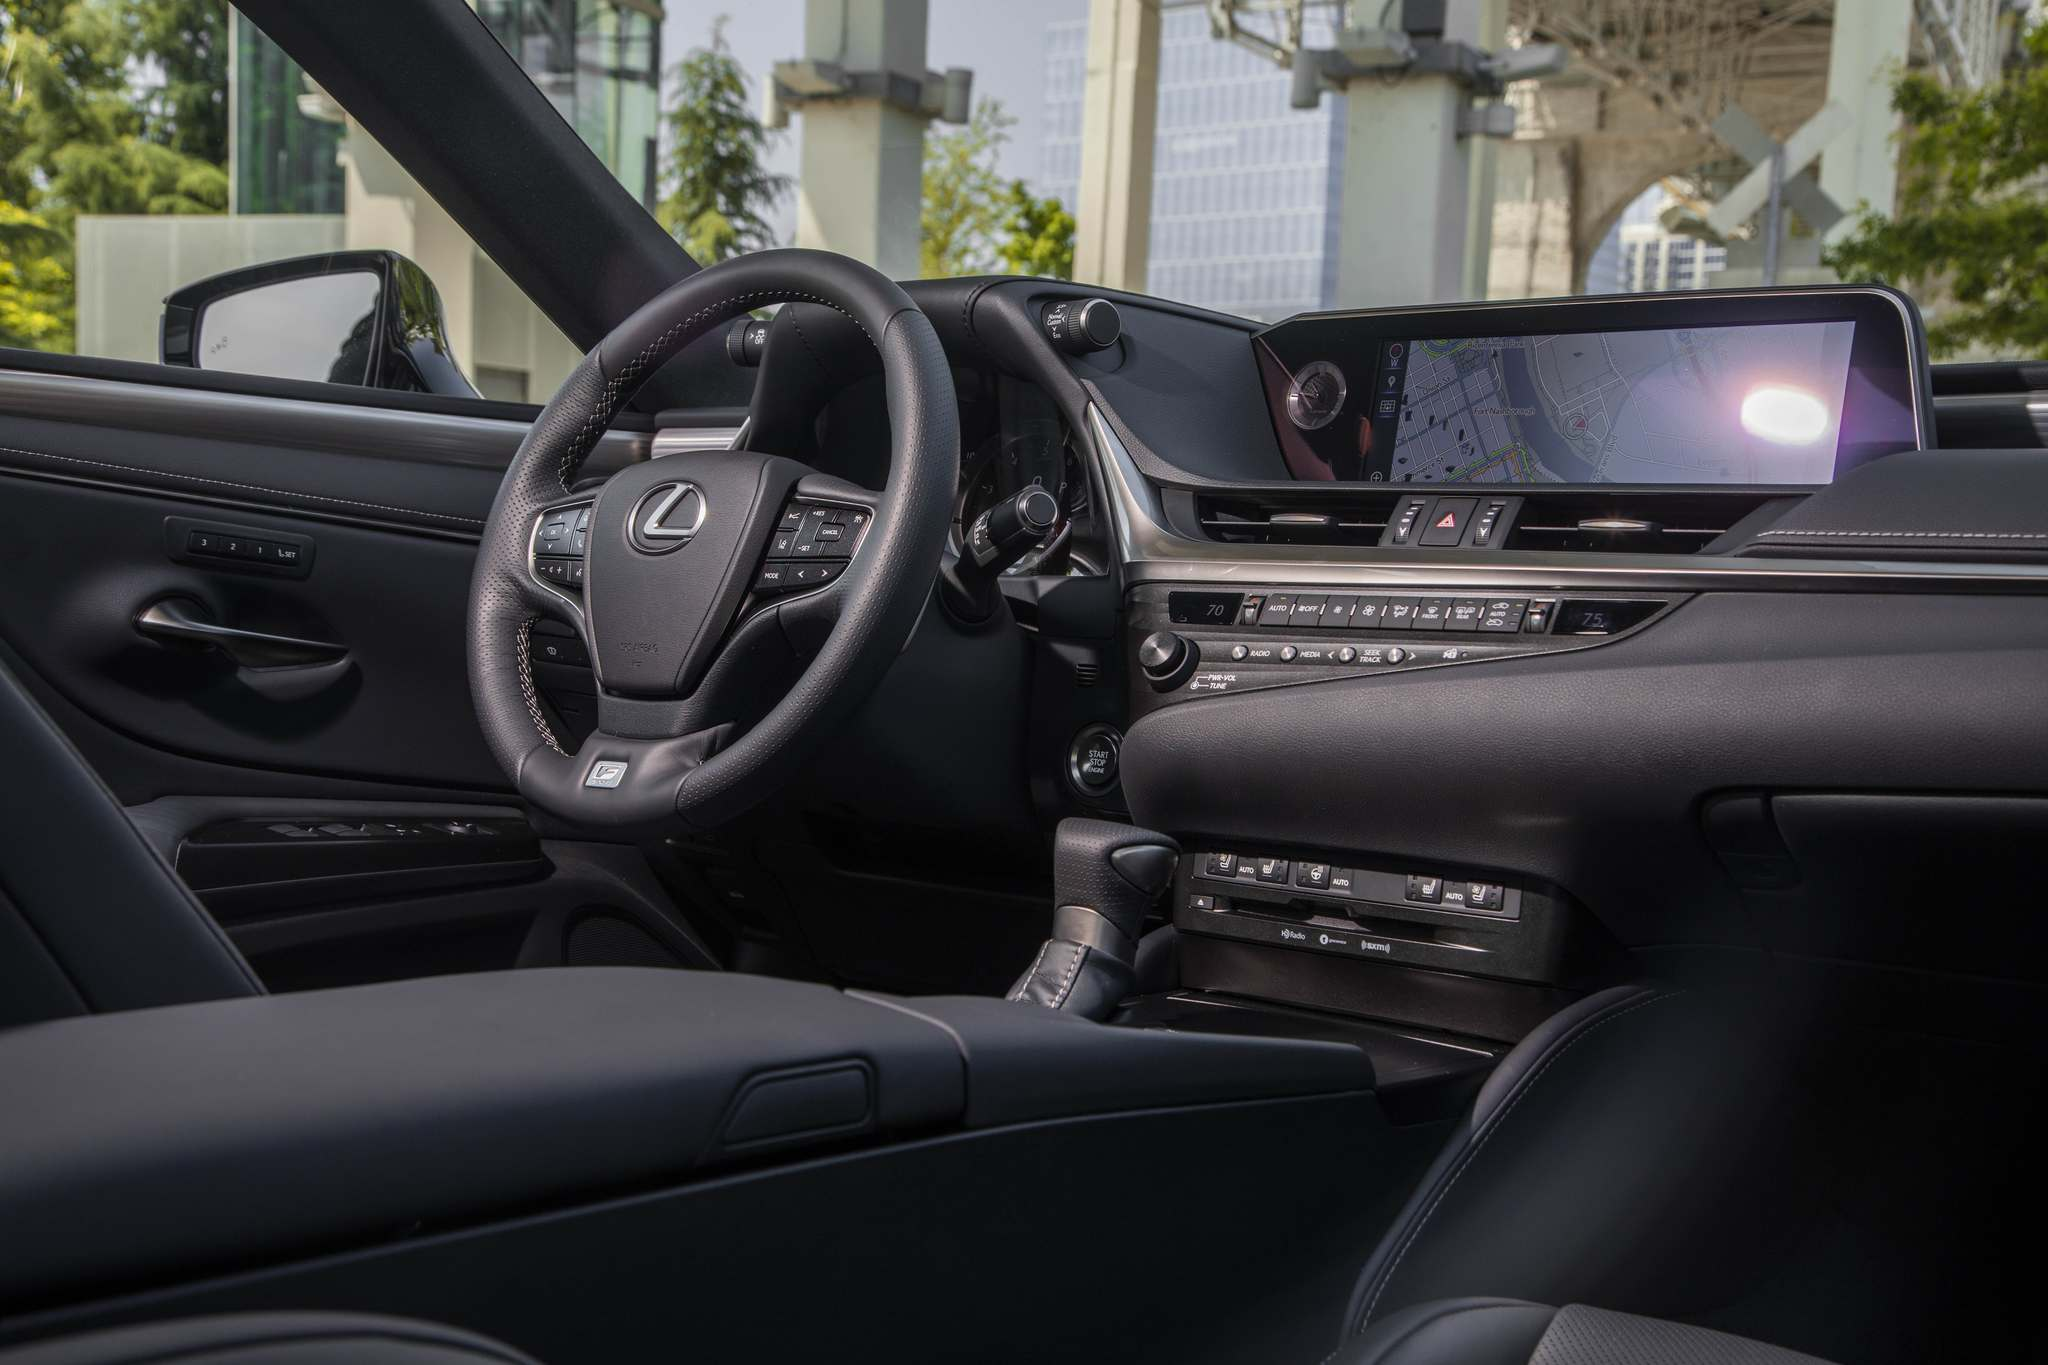 The ES 350's cabin features a 12.3-inch centre display screen controlled by the Lexus Remote Touch interface.